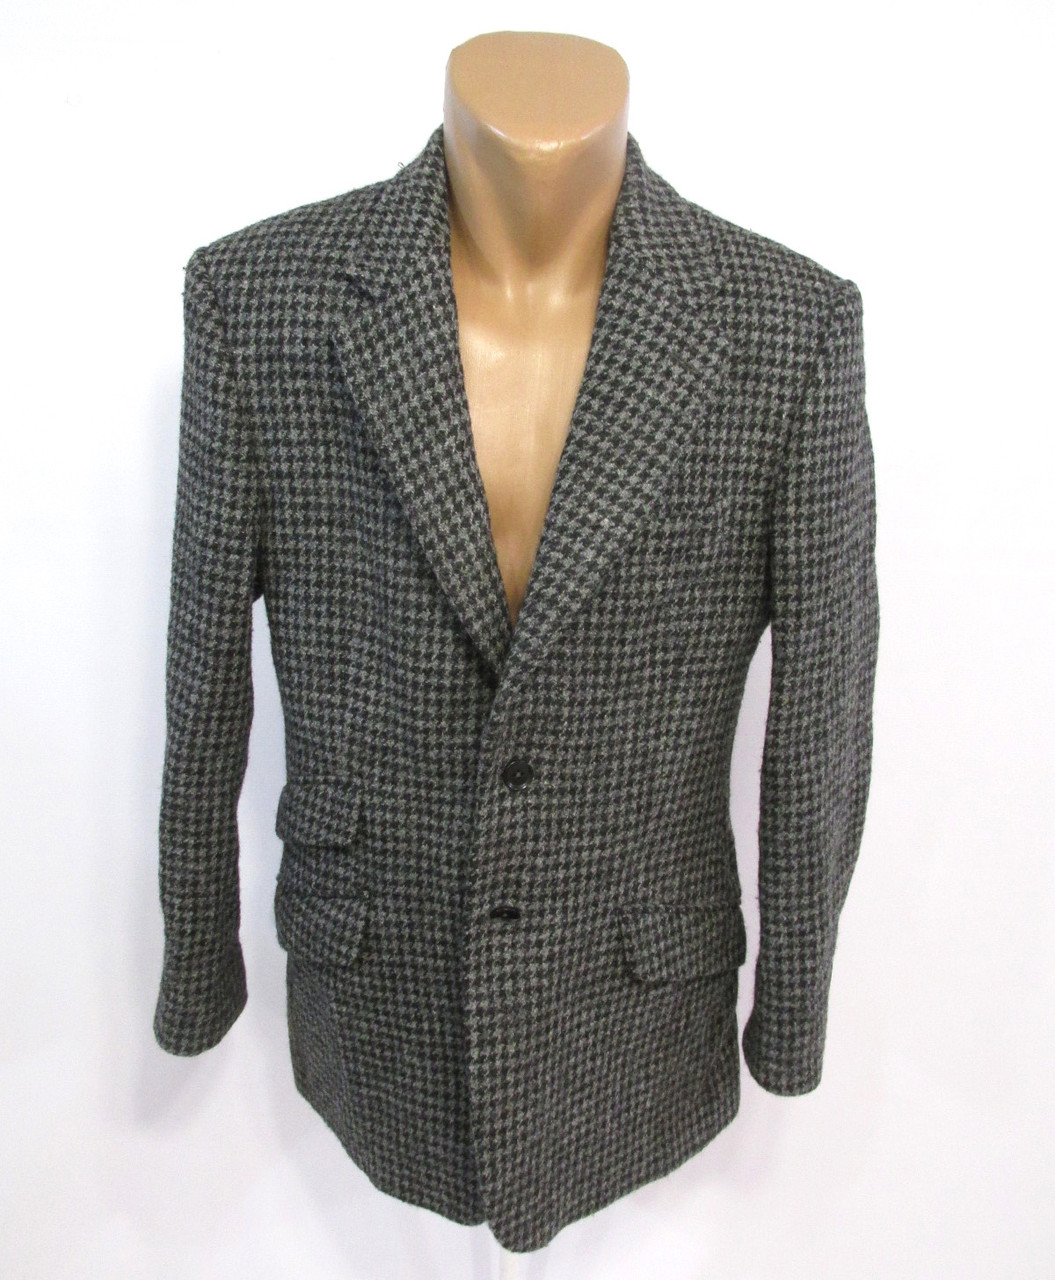 Пиджак твидовый Charles Tyrwhitt, Harris Tweed, 38R, на М, Как Новый!